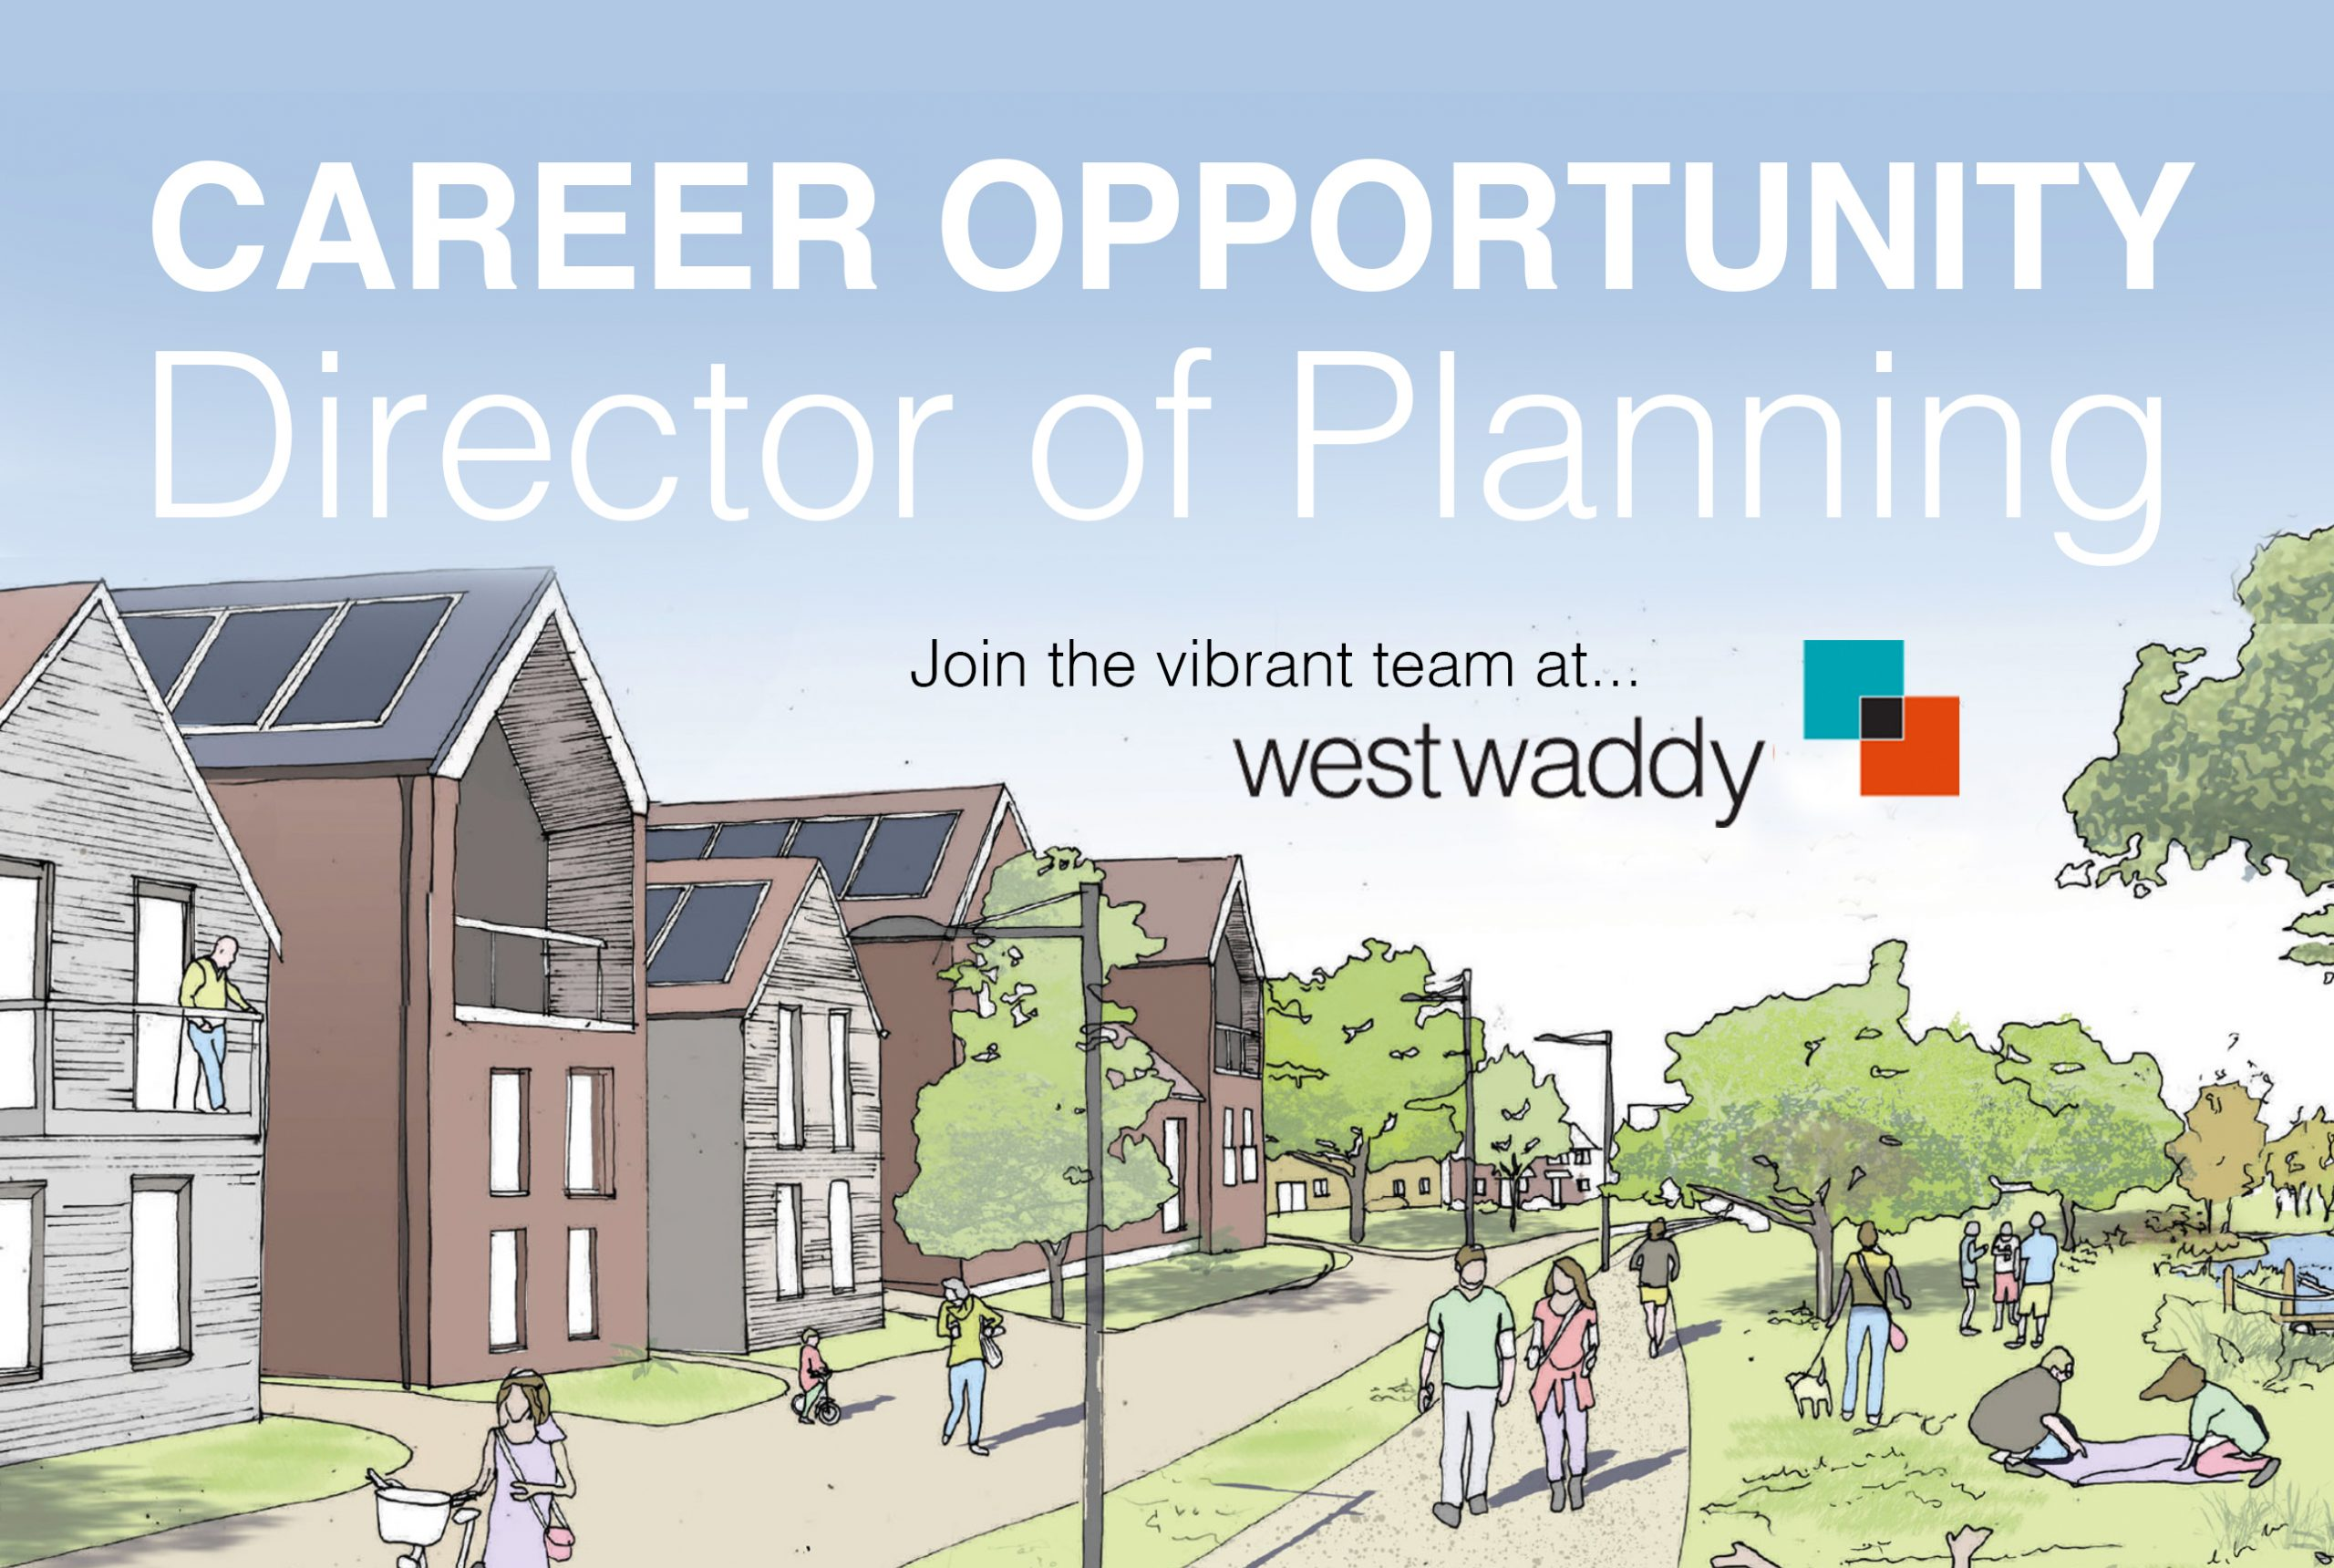 Director oDirector of Planning, Career Opportunity, Job, Job Vacancy, Town Planning Director, Director, West Waddy, Architects, Town Planners, Urban Designersf Planning, Job Opportunity, Job, Job Vacancy, Town Planning Director, Director, West Waddy, Architects, Town Planners, Urban Designers